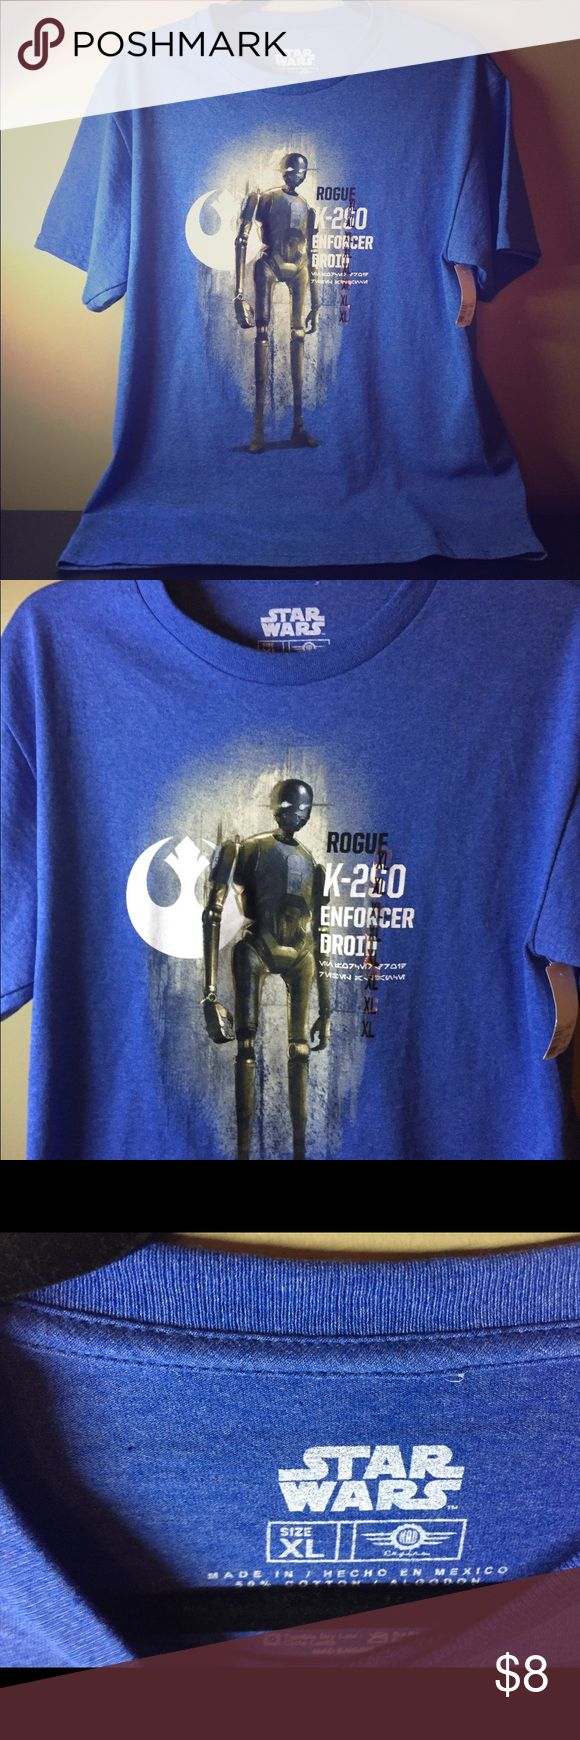 Star Wars Rogue T-Shirt NWT Star Wars Rogue Movie T-Shirt. Tops Tees - Short Sleeve